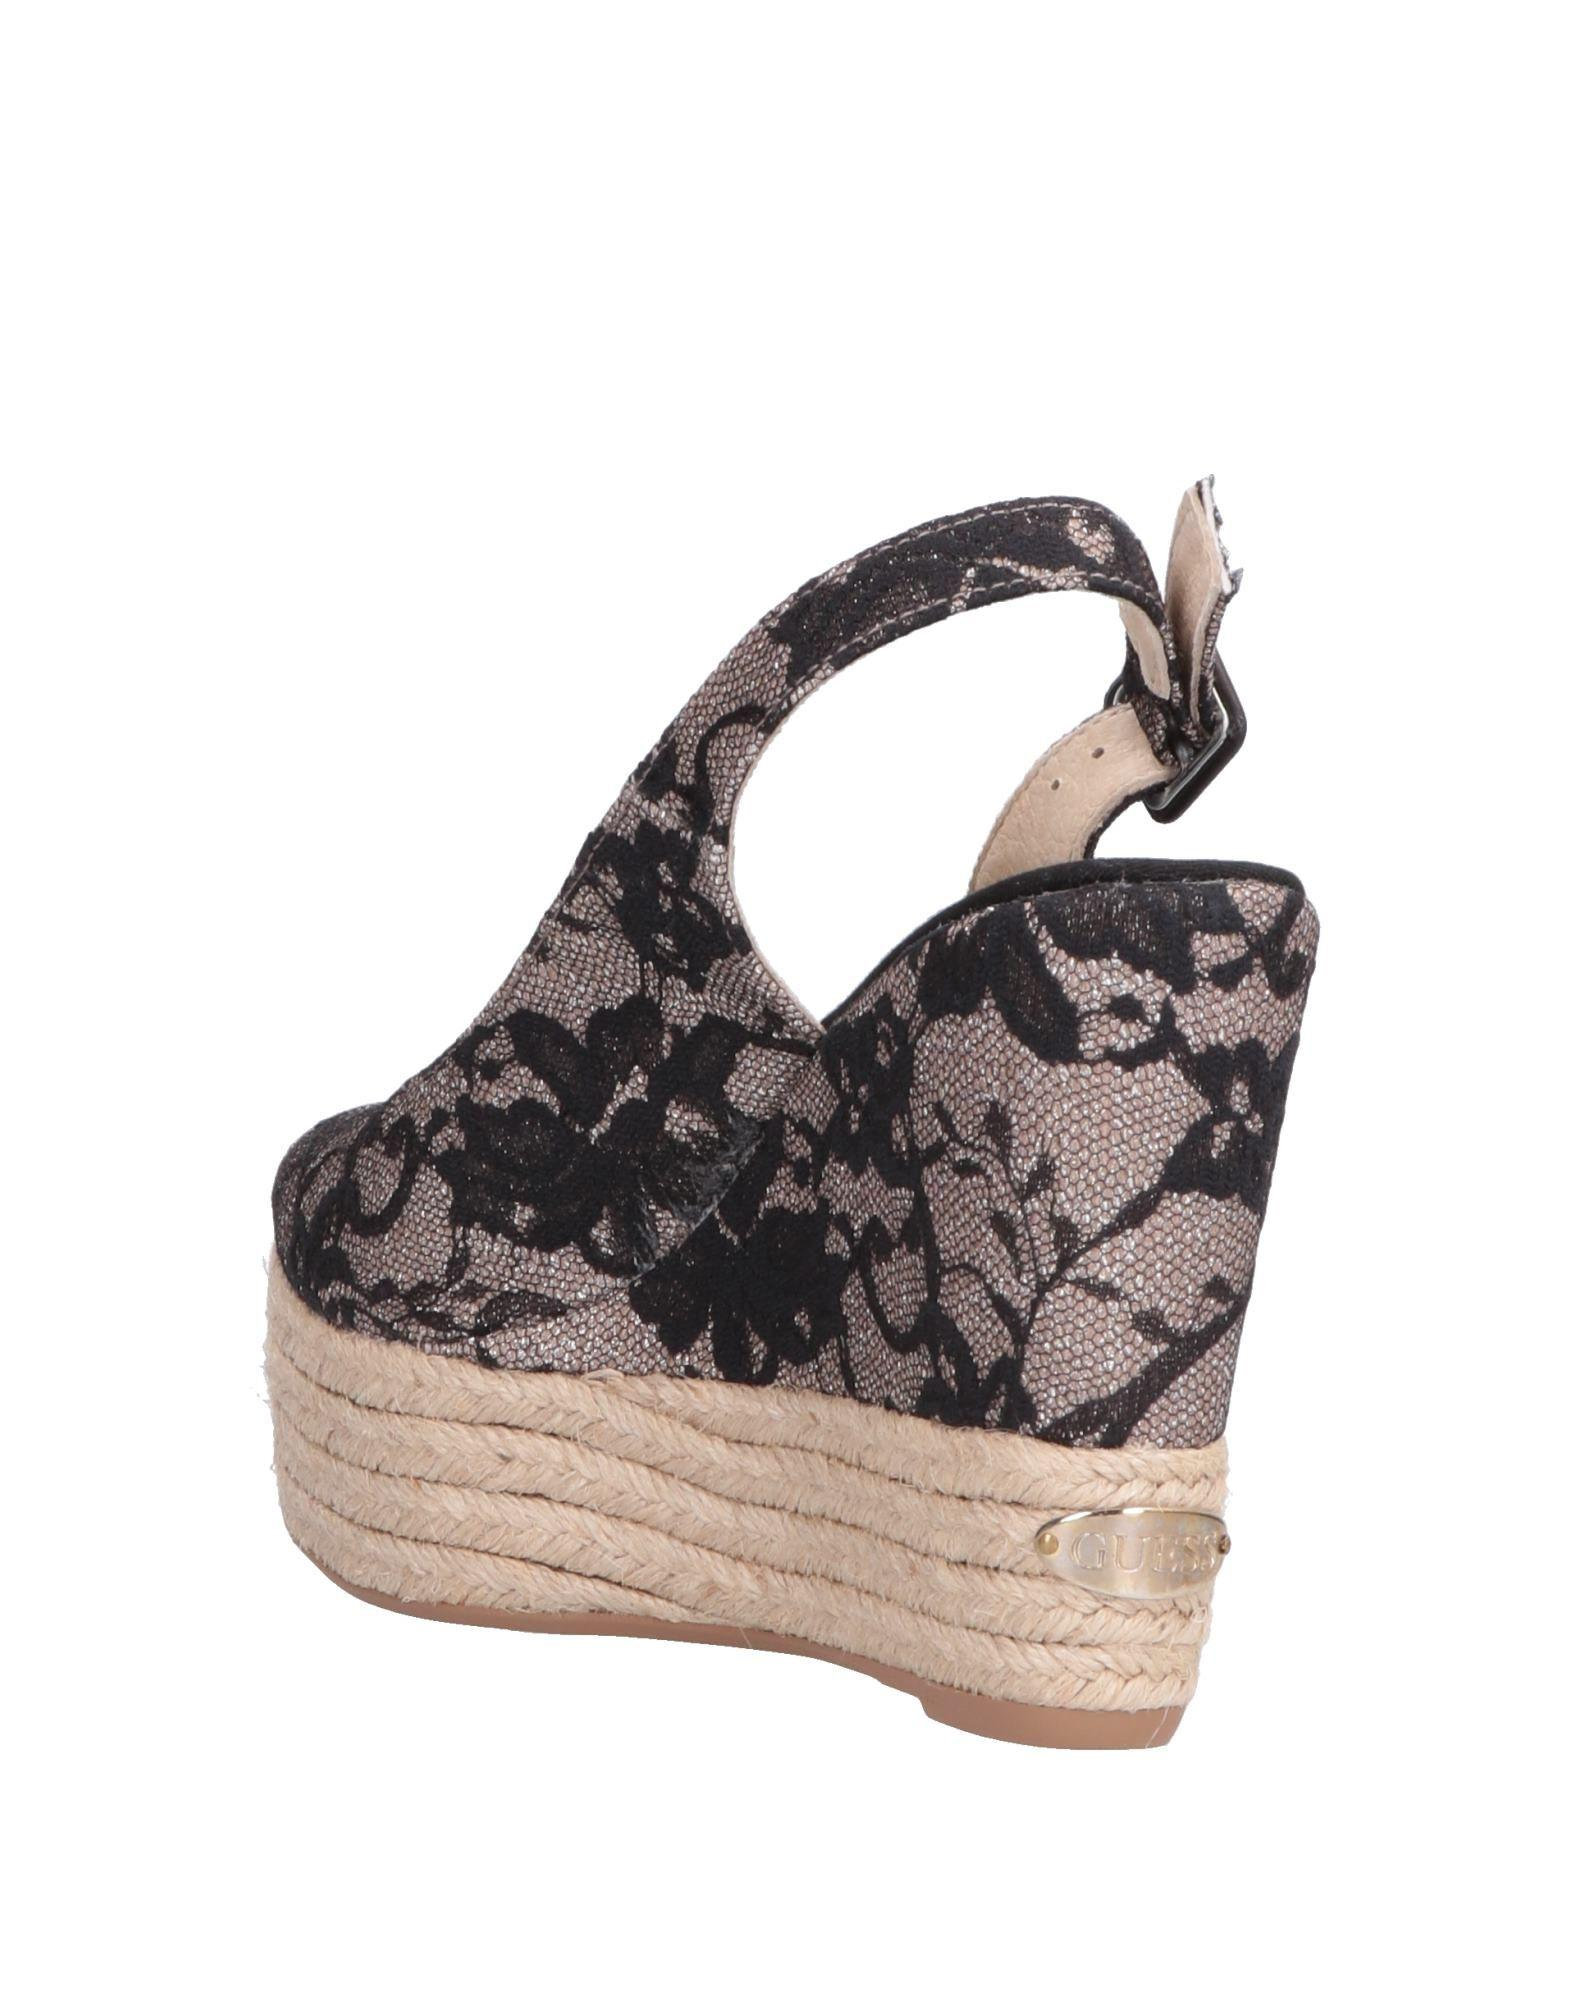 adc8e6bdad446a Guess Sandals in Black - Lyst